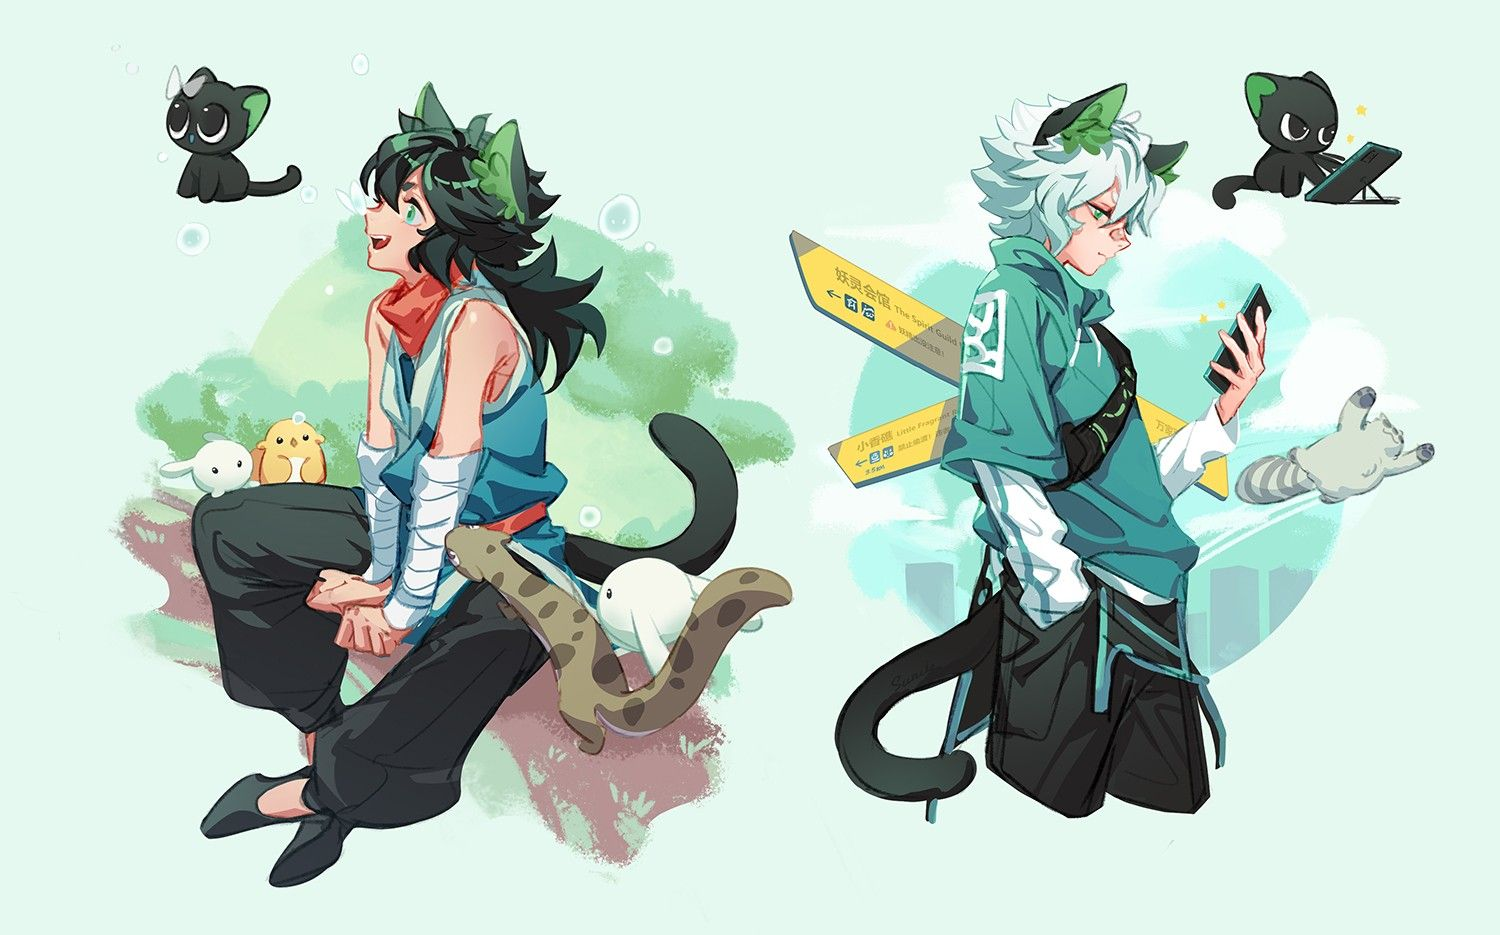 pin by ser rin on nong hei character art epic art character sketches